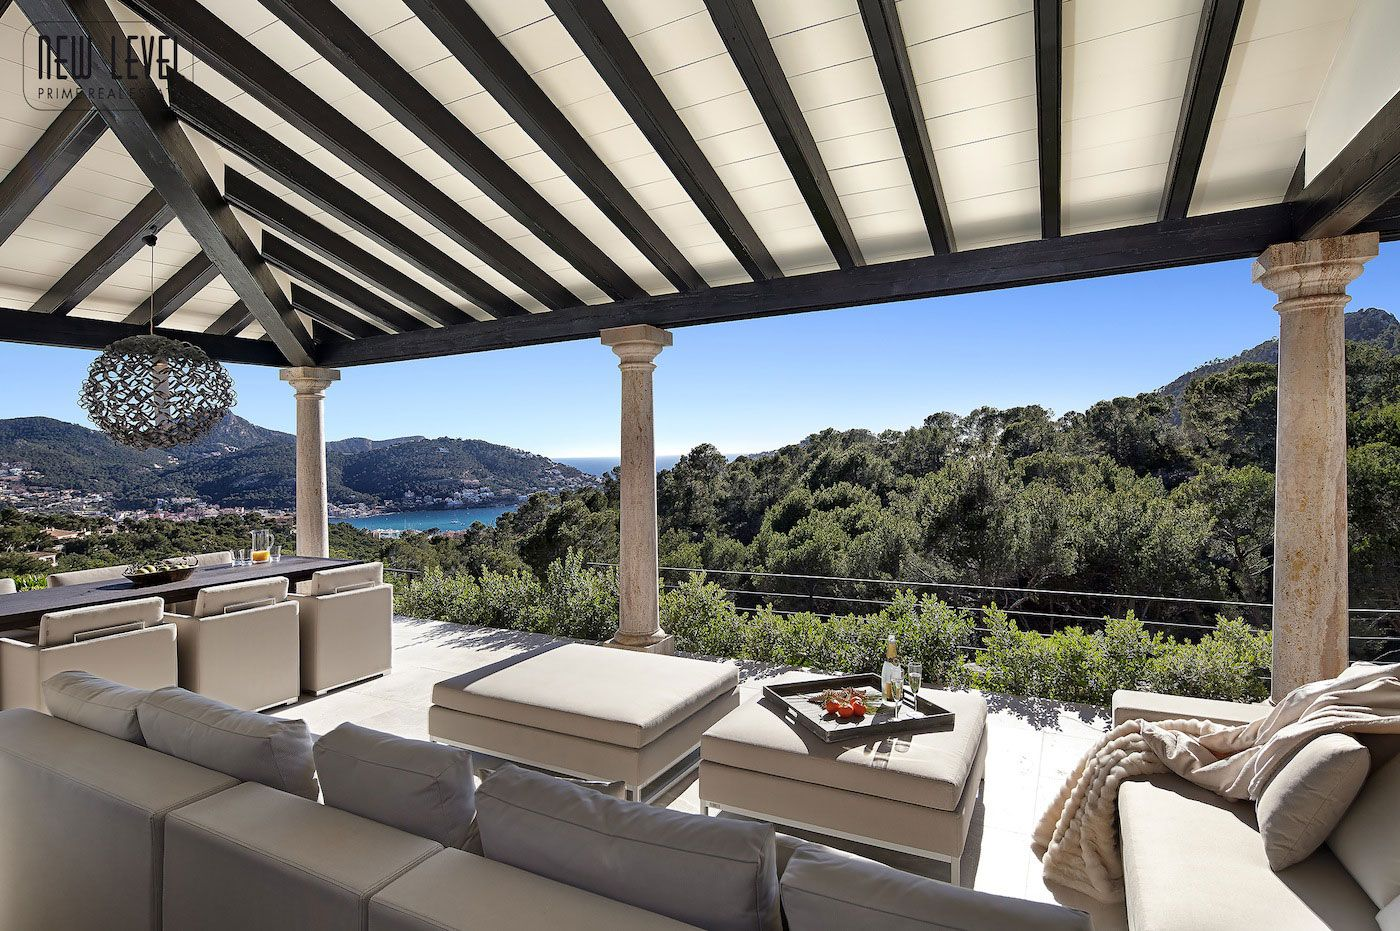 Luxury Villa With Fantastic Views Over the Hills of Mallorca-09